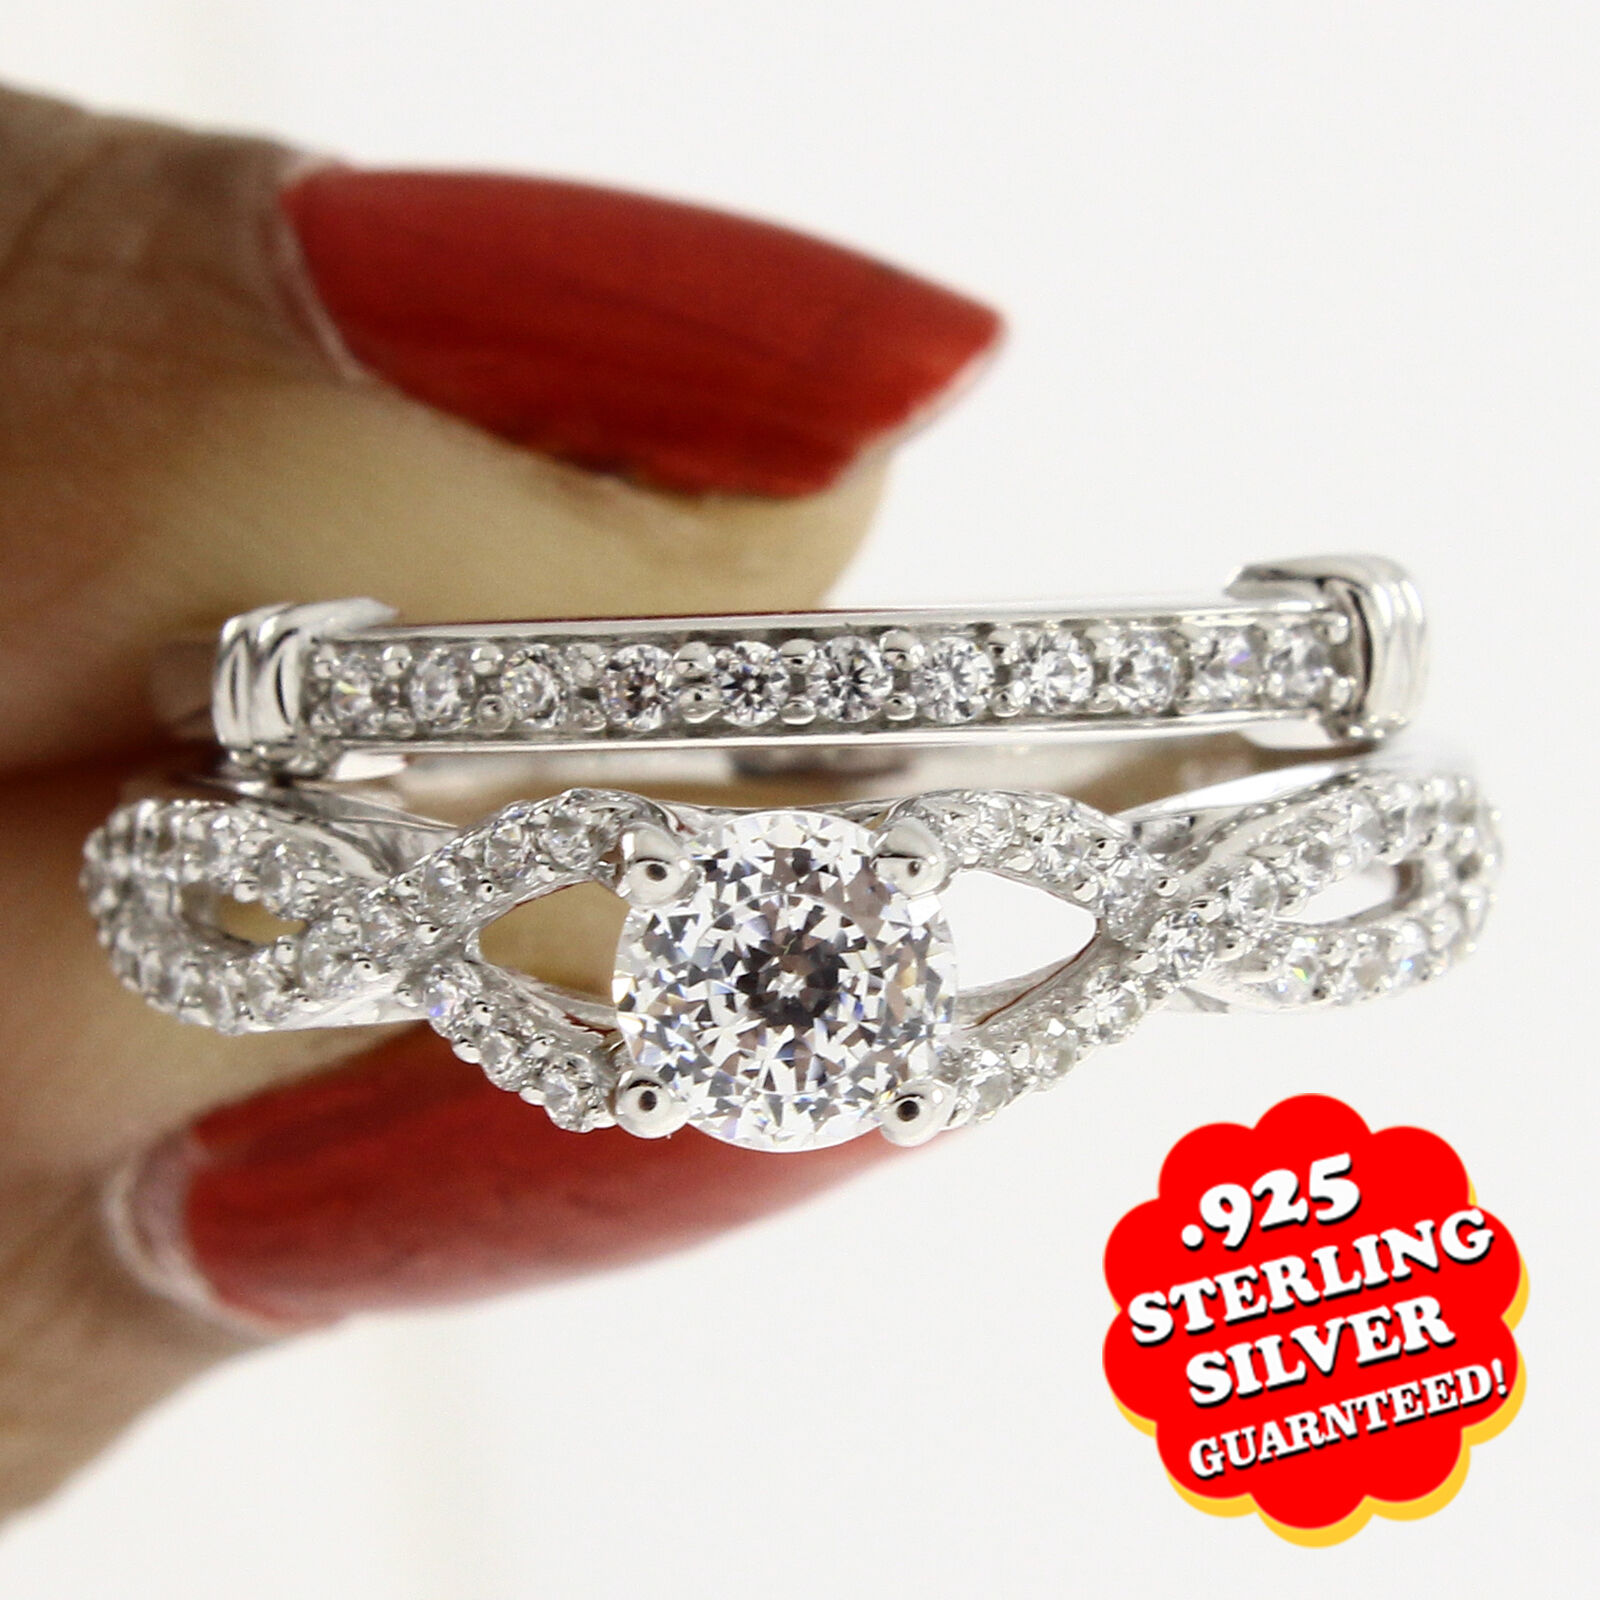 0.89 Ct D VVS1 14K White gold Over Infinity Solitaire Bridal Engagement Ring